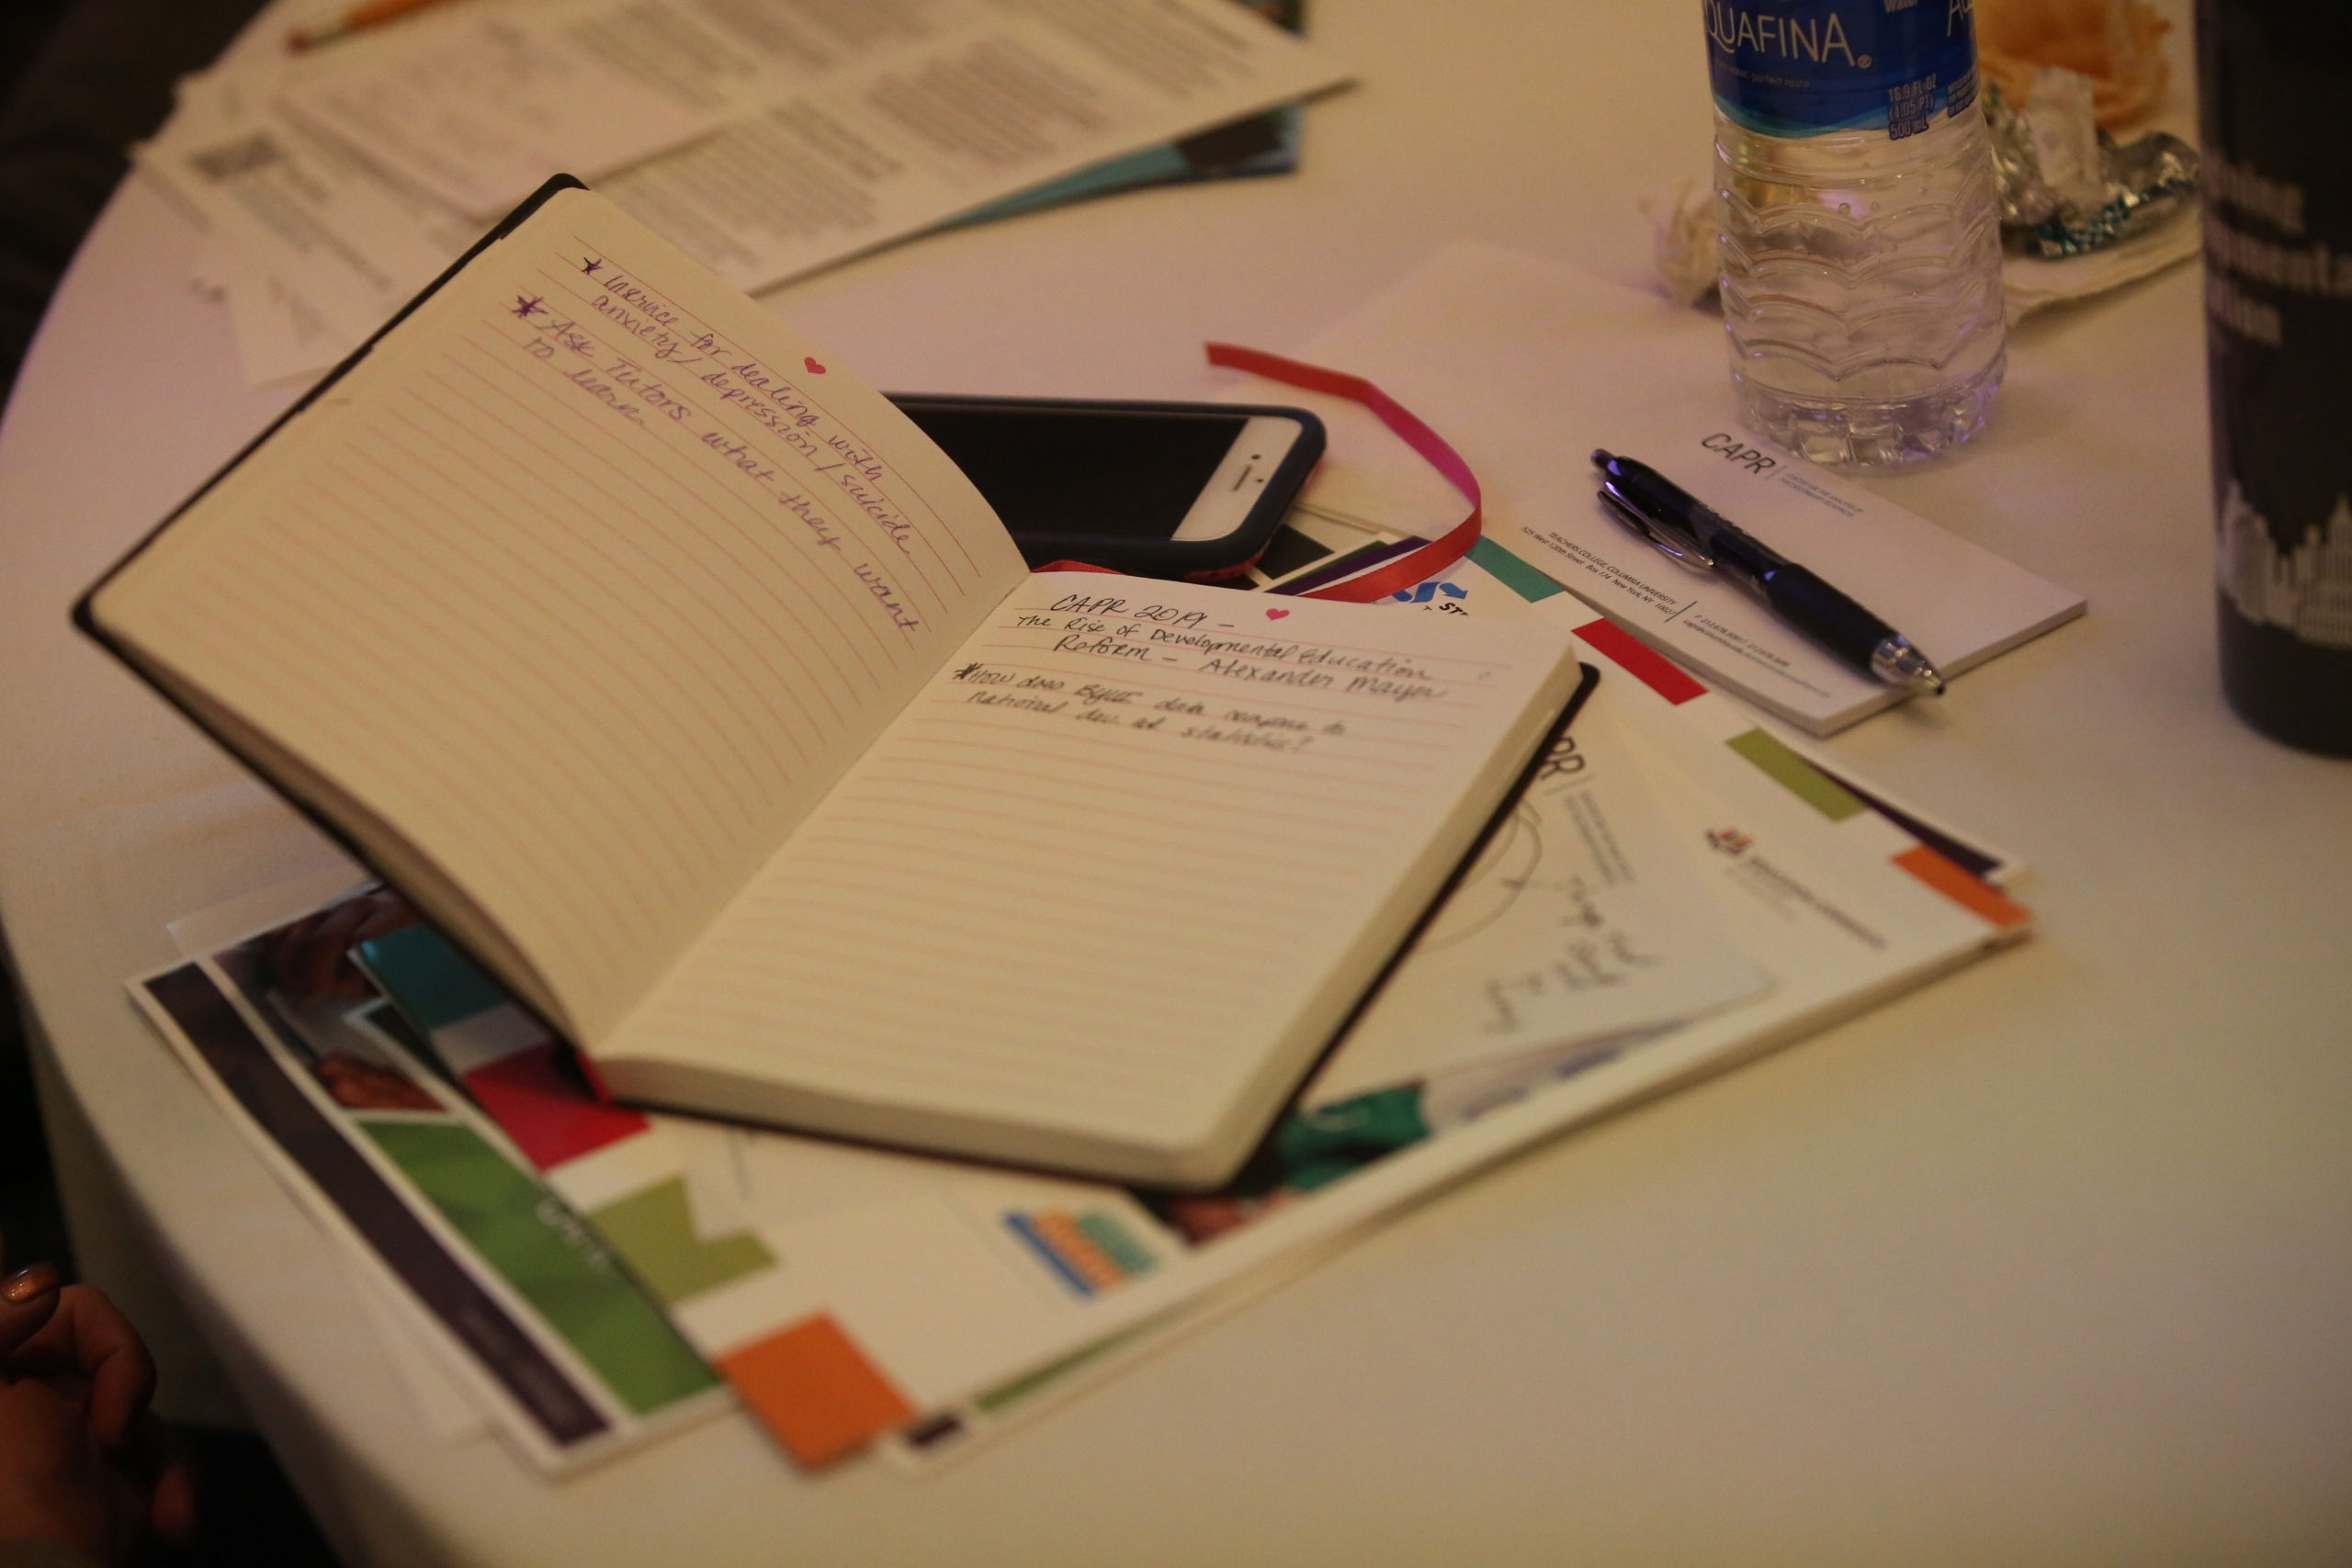 An open notebook on a table at the conference